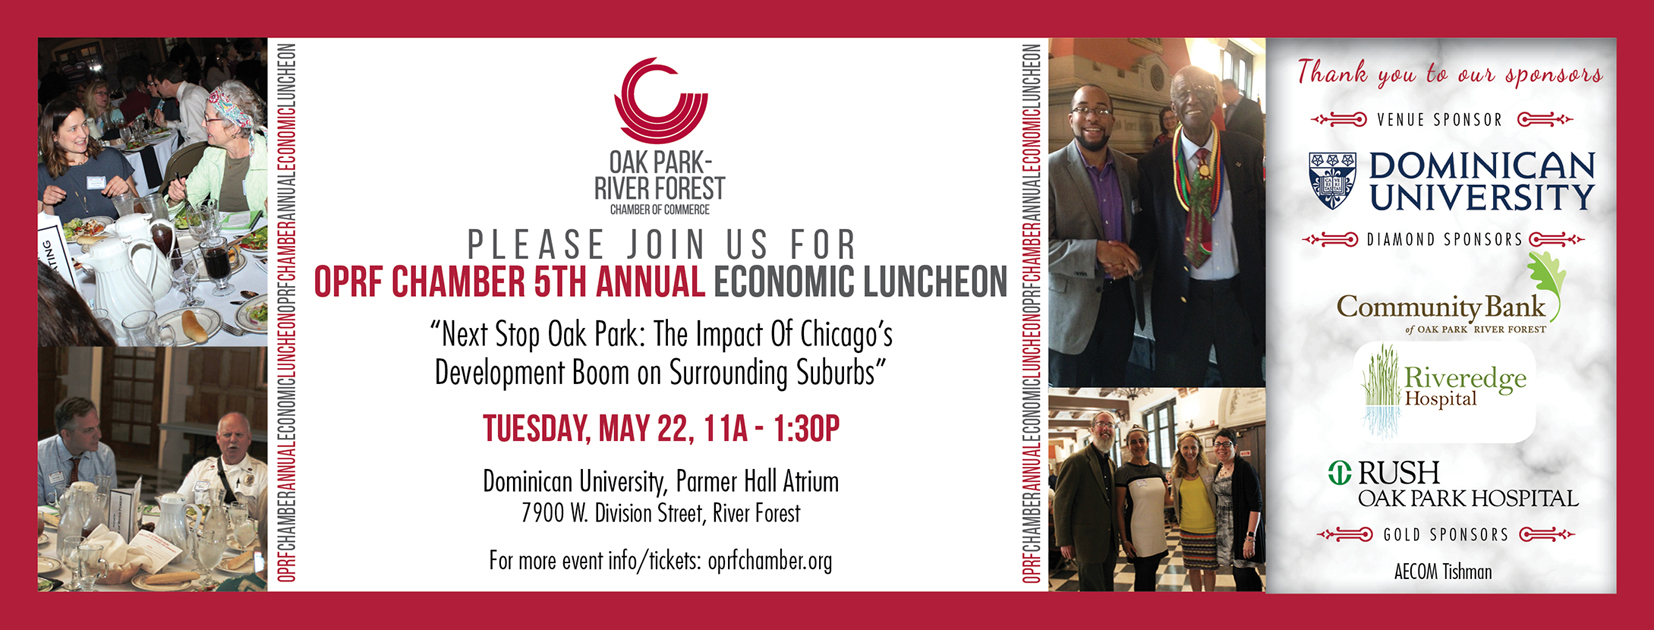 2018 4th Annual Economic Luncheon on 5/22, 11A-1:30P @ Dominican University In River Forest